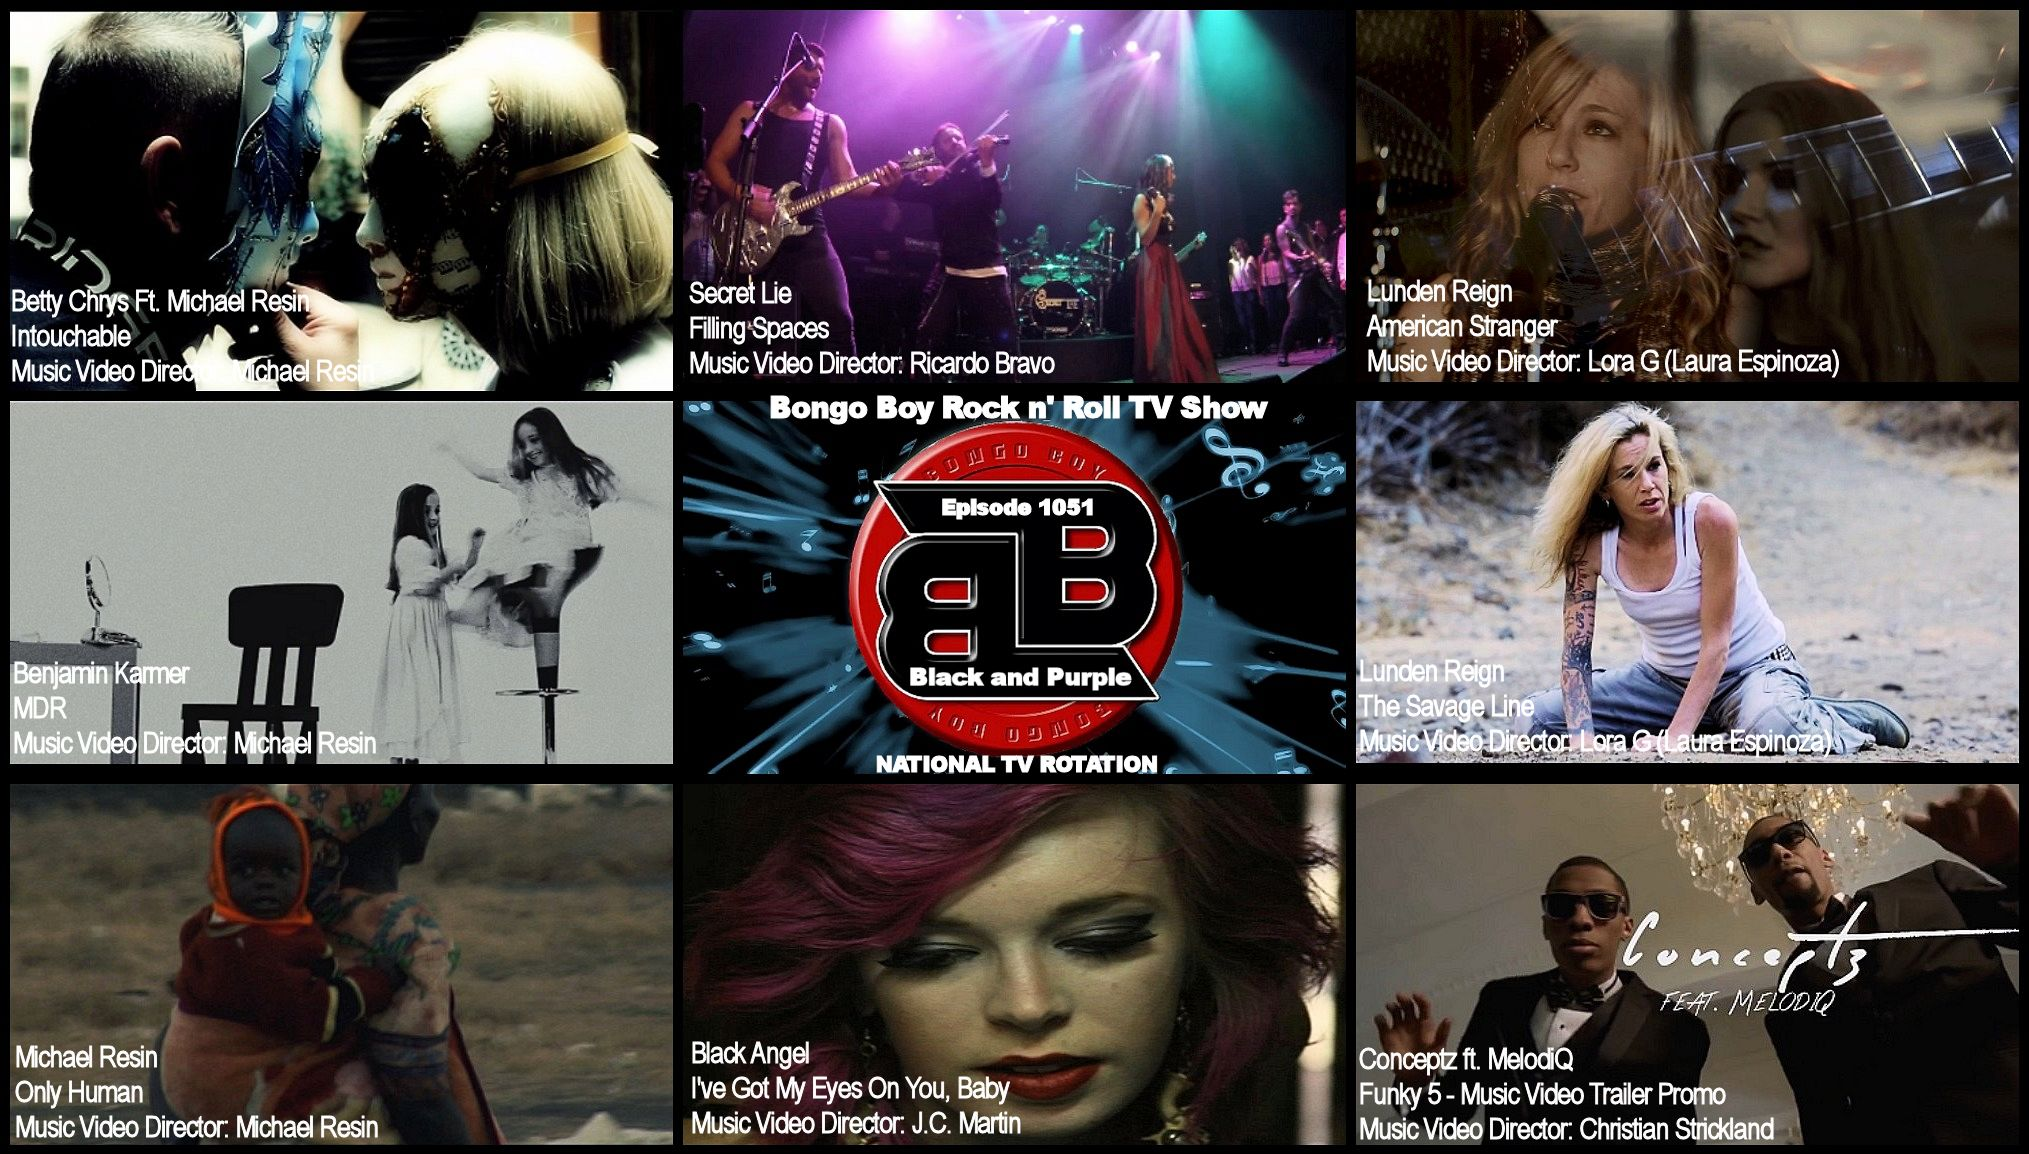 Bongo Boy Rock n' Roll TV Episode 1051